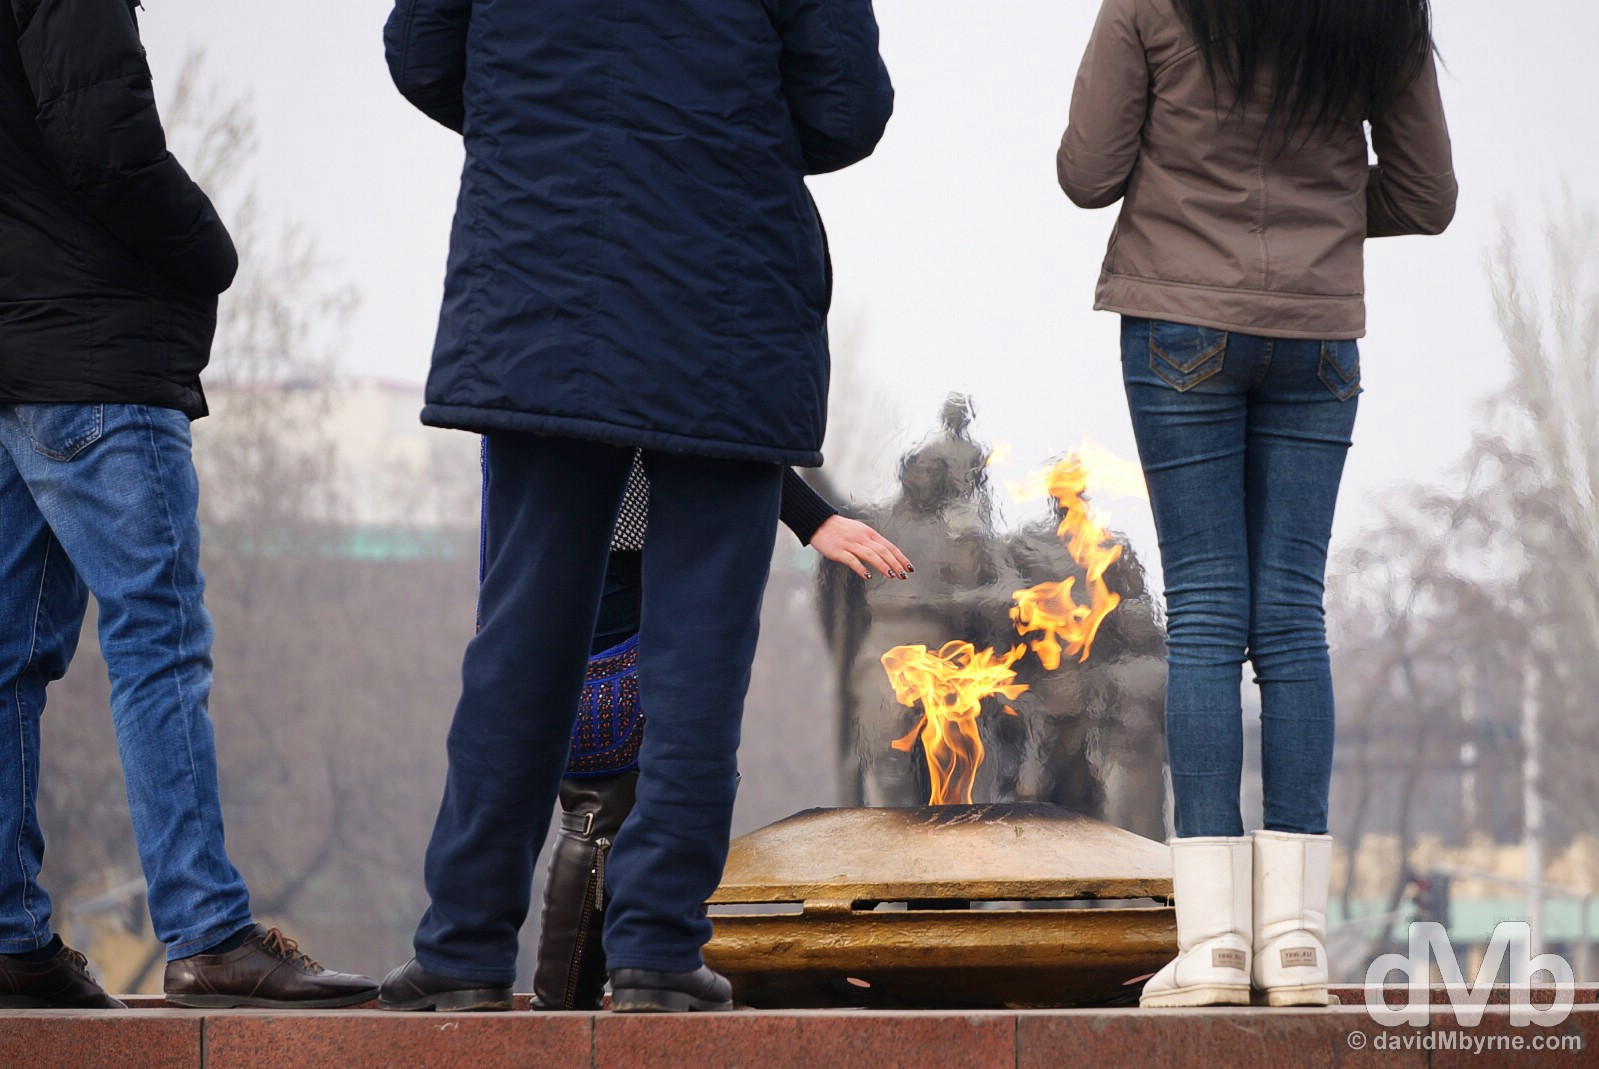 Warming up by the Eternal Flame of the War Memorial in Victory Square, Bishkek, Kyrgyzstan. February 23, 2015.